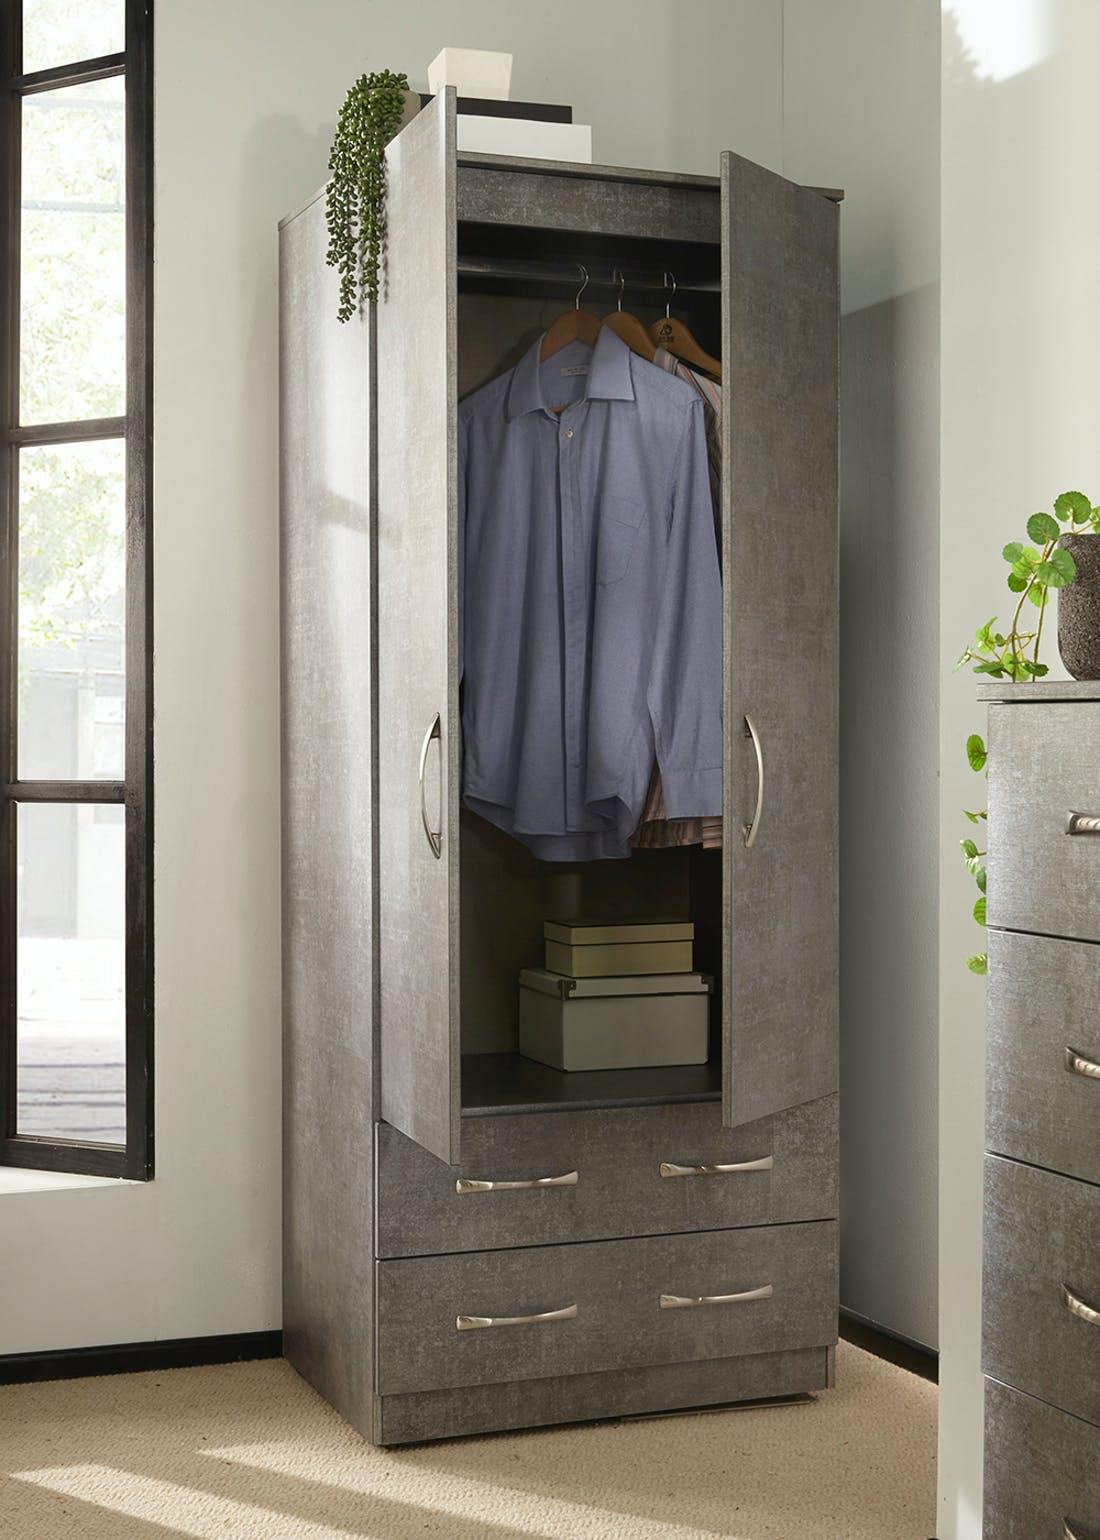 Swift Roma 2 Drawer Wardrobe (182.5cm x 74cm x 53cm)